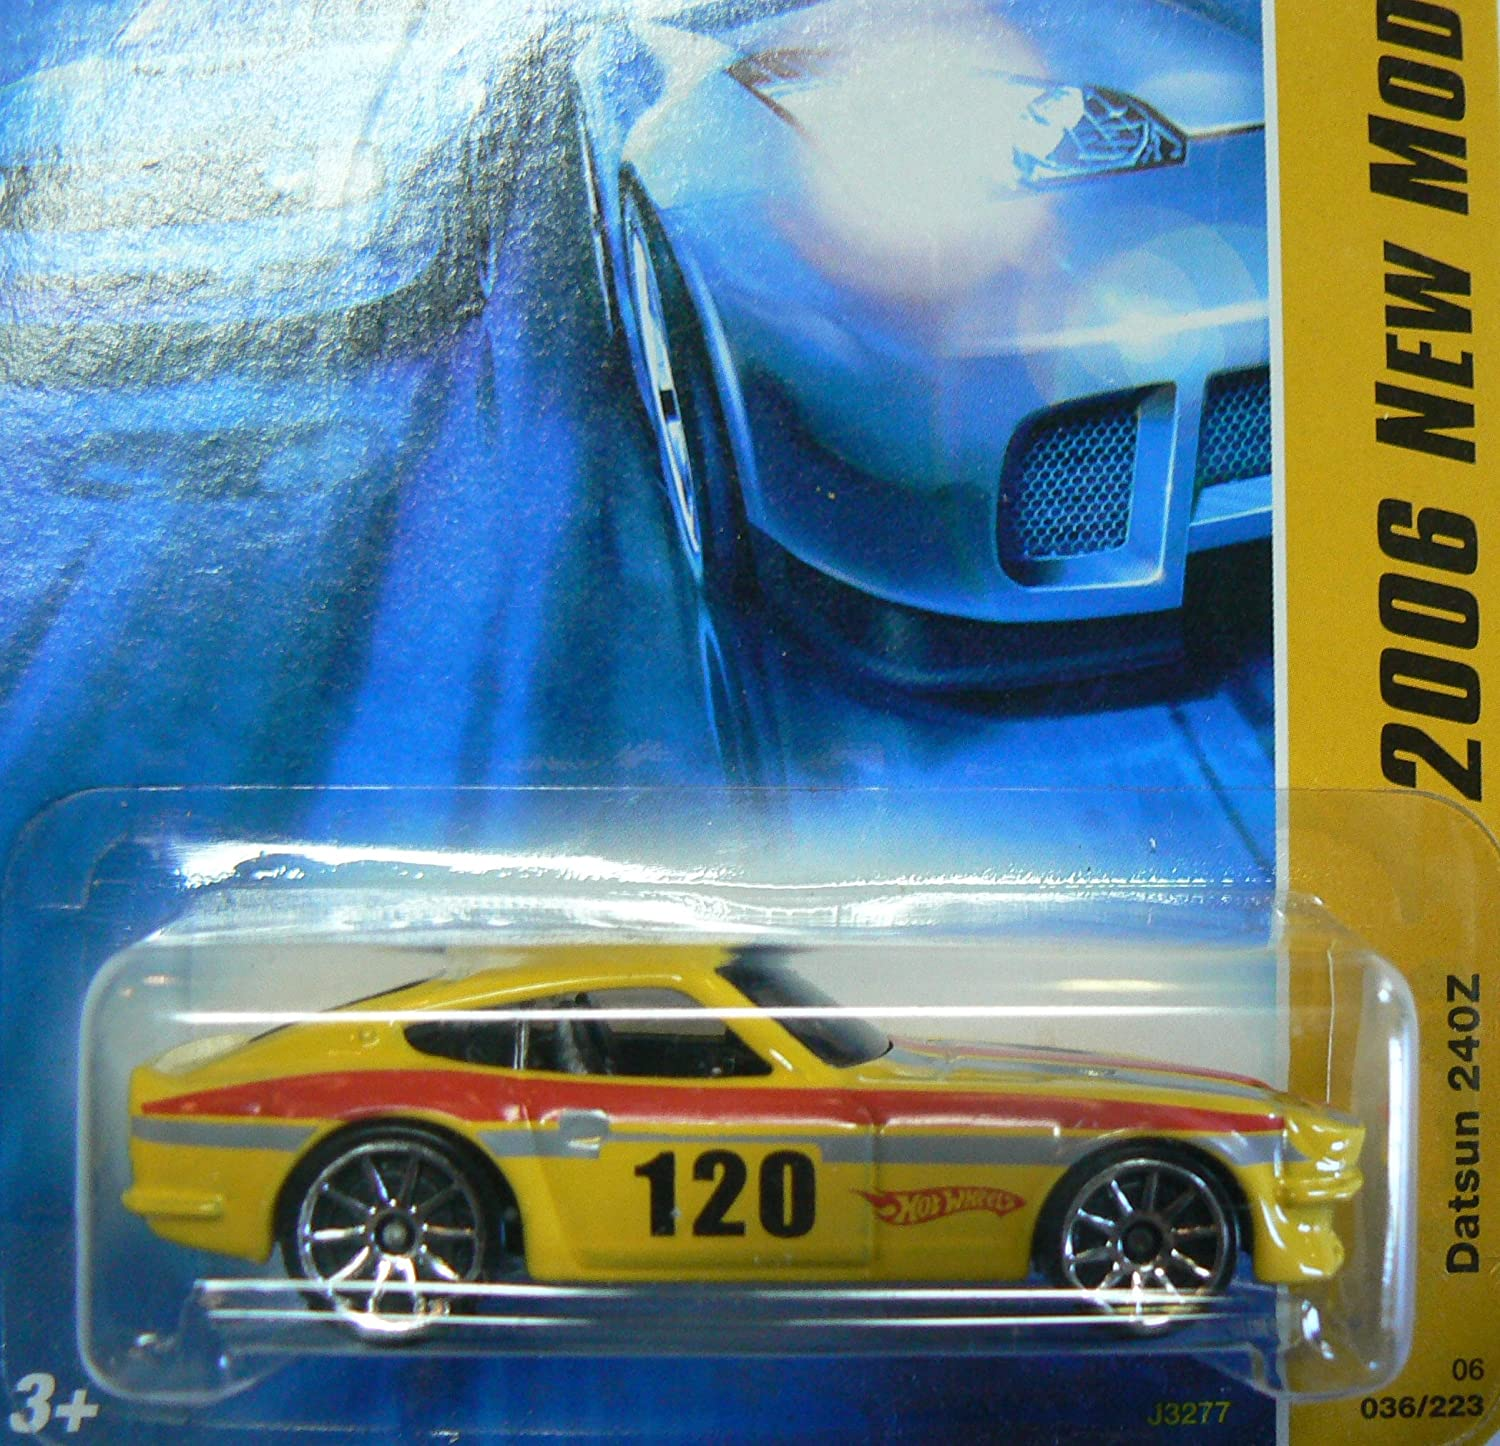 Hot Wheels 2006 New Models 36 of 38 Datsun 240Z Yellow with 10 Spoke Wheels 036/223 by Hot Wheels